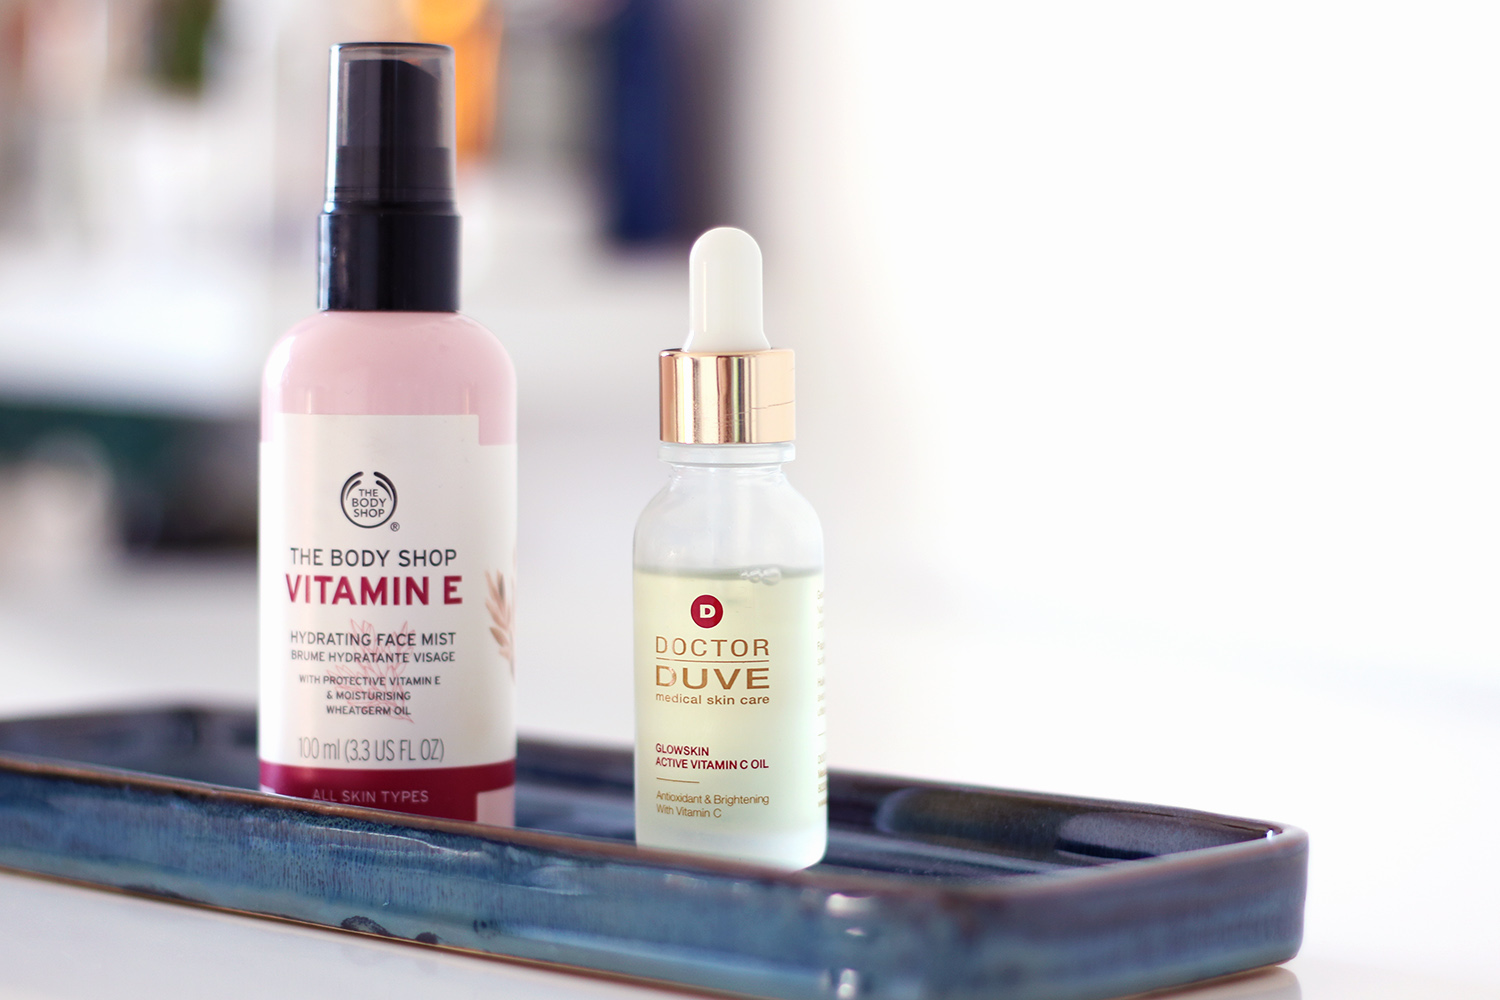 Doctor DUVE Gesichtsöl, THE BODY SHOP, Vitamin E, Face Mist, Top Beauty Tools, Beauty Favoriten, Make-up, Trends, Review, Let's Talk About Beauty, Blogserie, Beauty Blog, Berlin, Influencer, advanceyourstyle, Advance Your Style